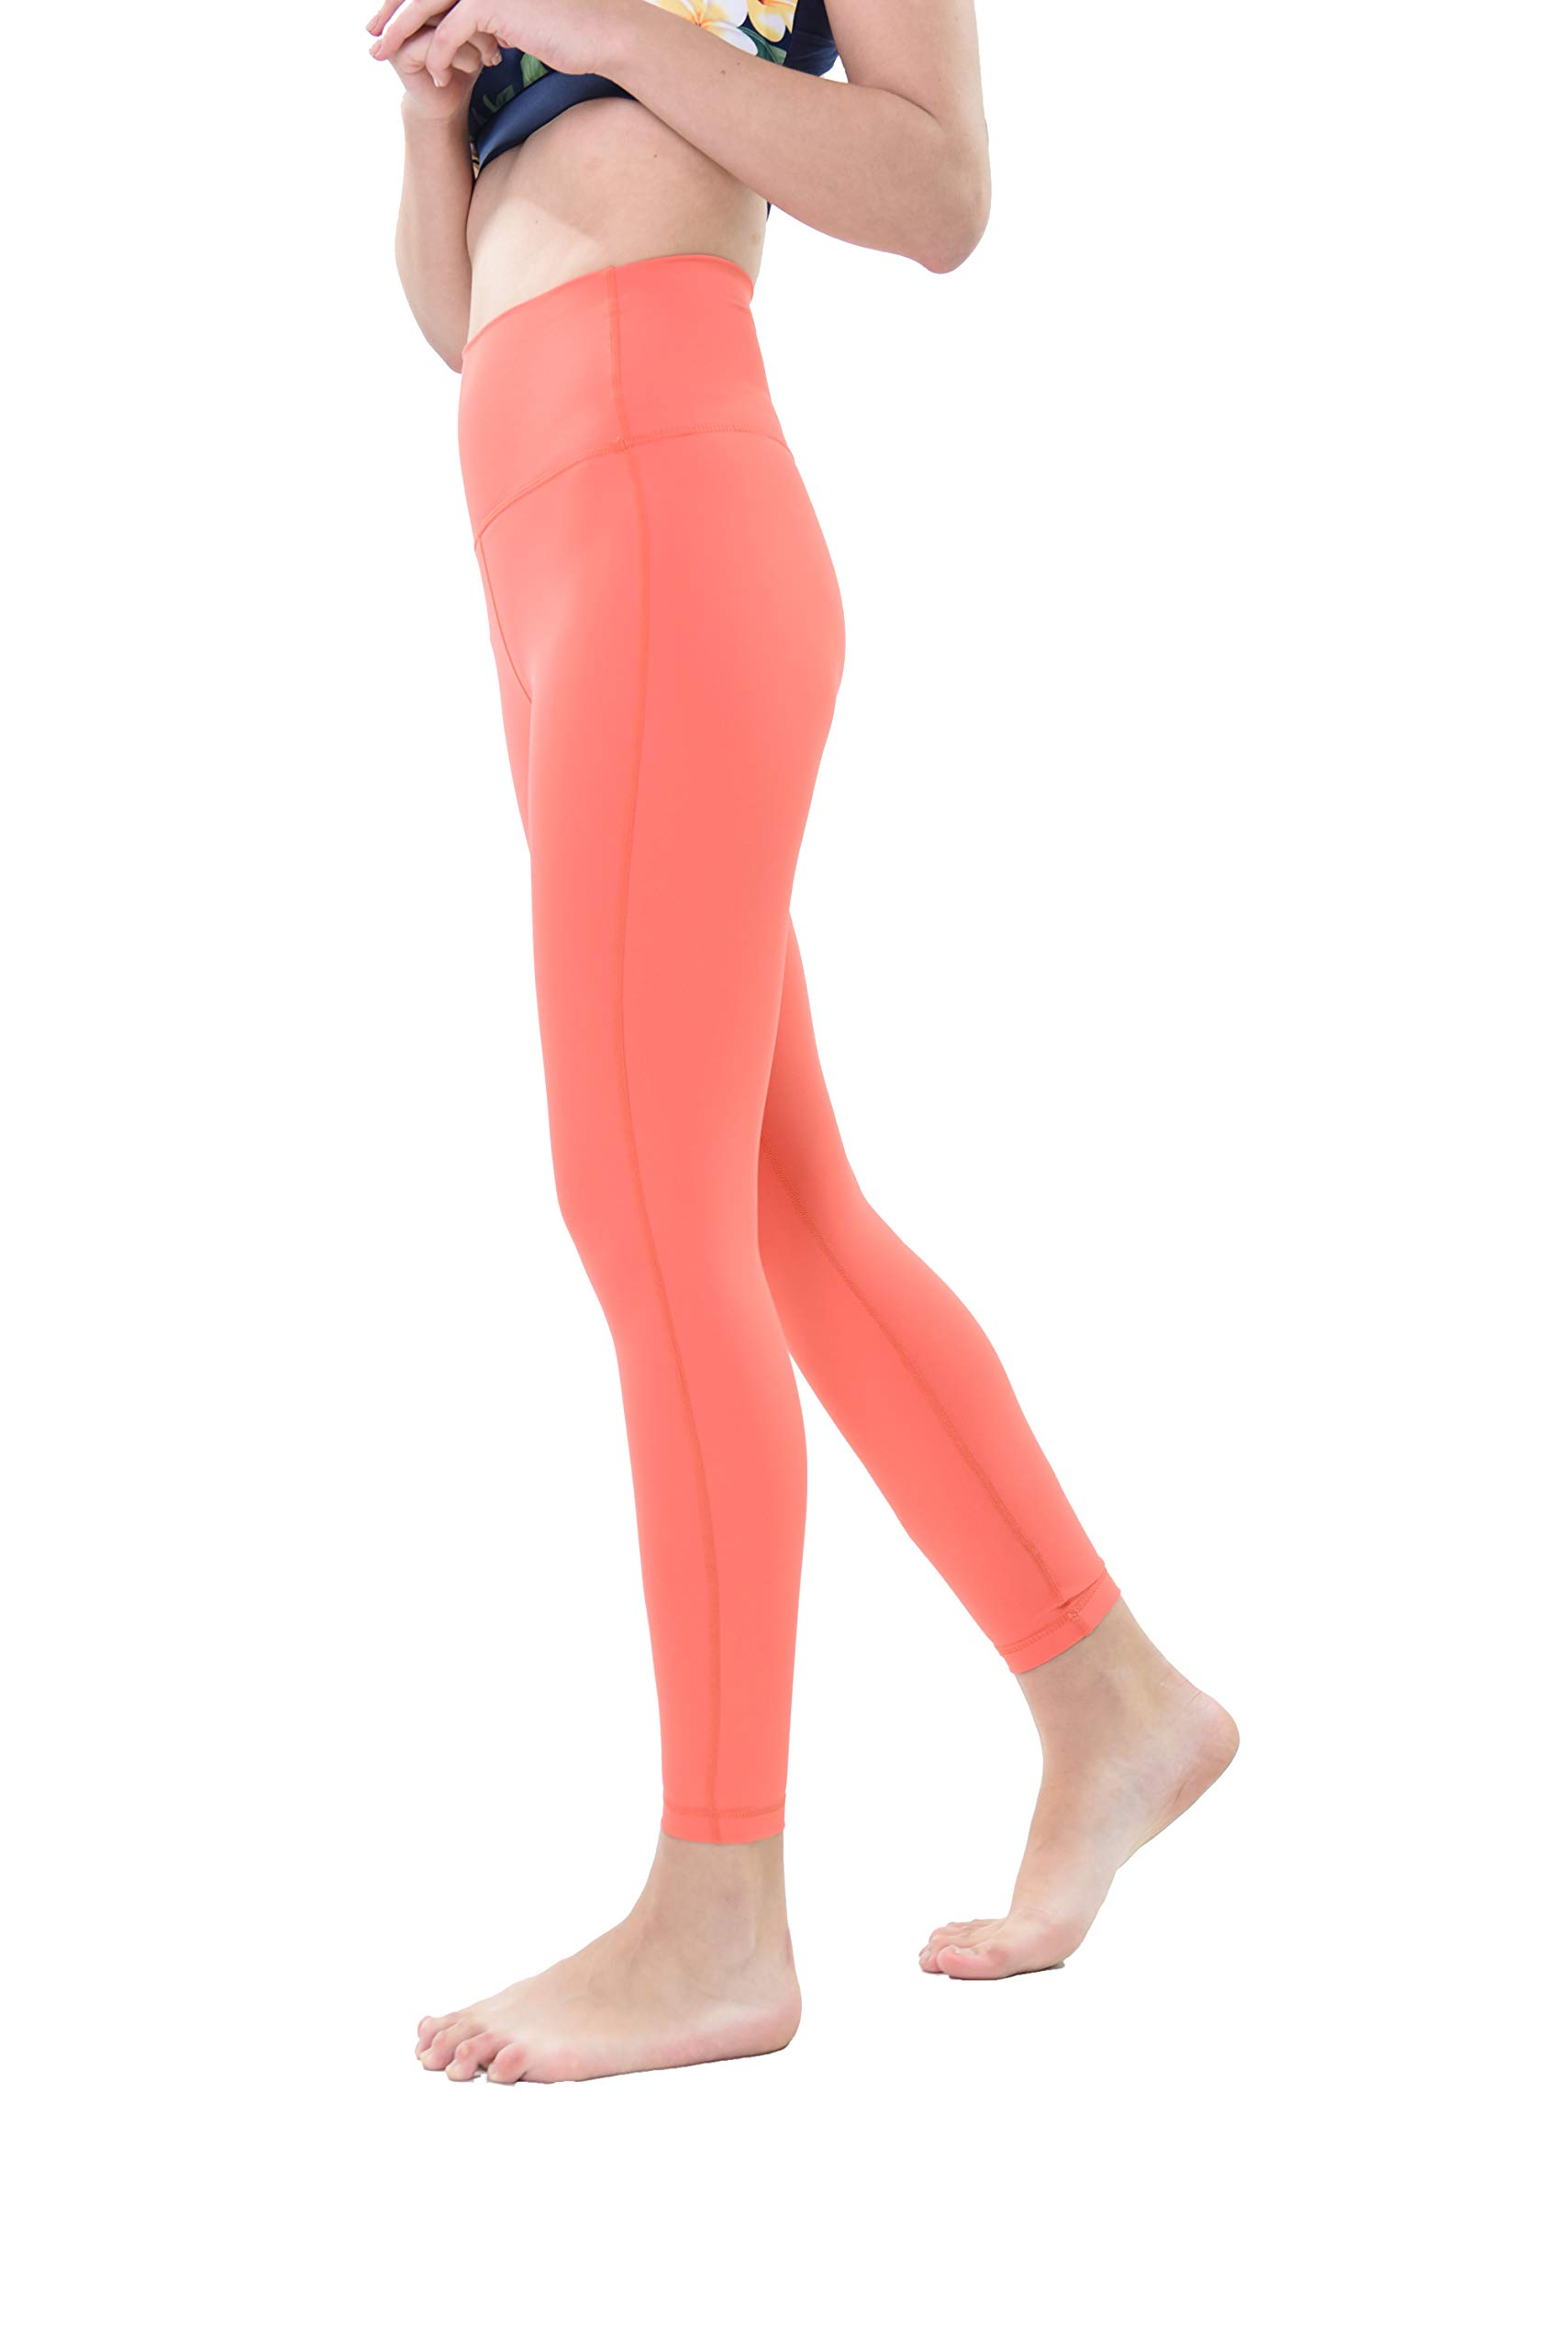 Private Island Women Swim Long Leggings UPF50+ Rash Guard Wetsuit (S, Coral) by Private Island